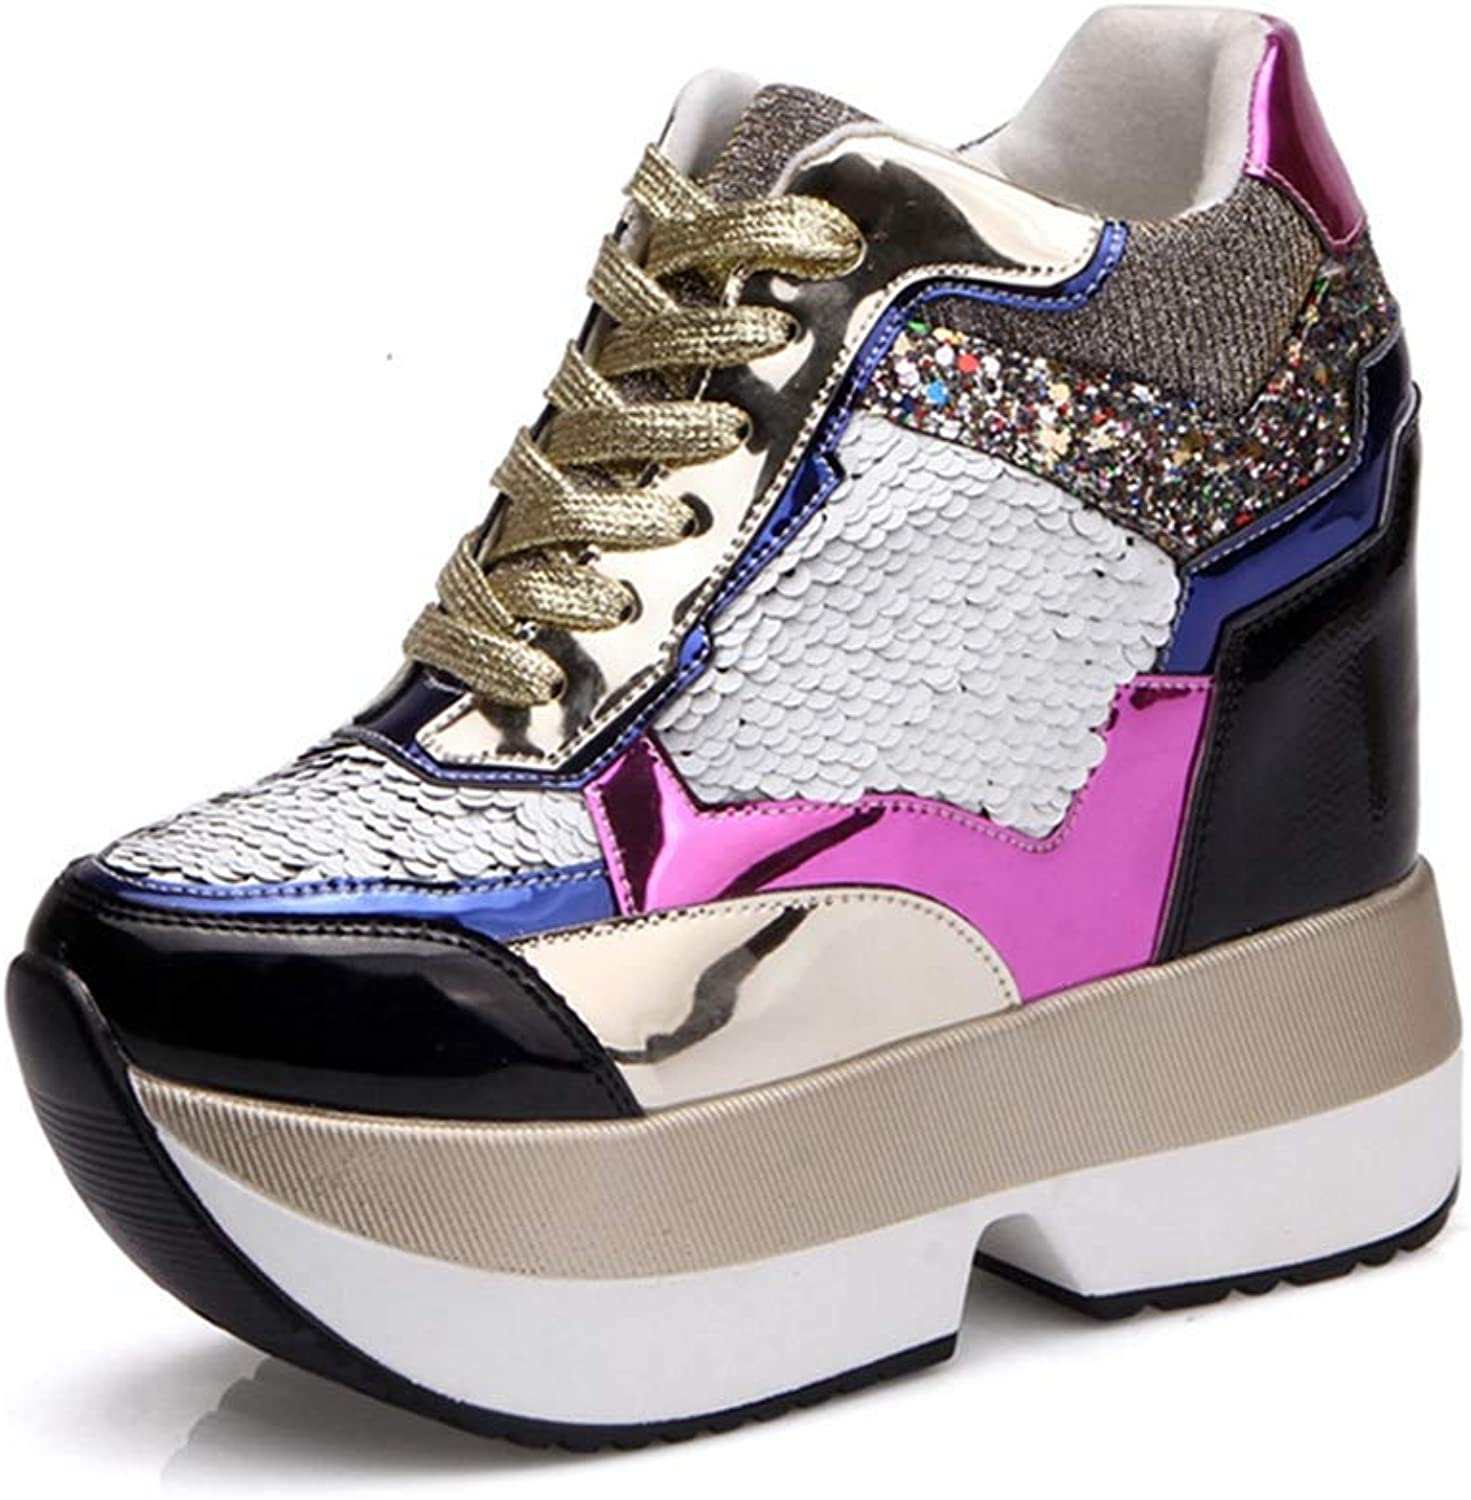 Wallhewb Women Spring Autumn High Heels Casual shoes Fashion Sequins Breathable Lace-up Platform Wedges shoes Elegant Fashionable Soft Beautiful Wear Resistant Joker gold 6 M US Casual shoes